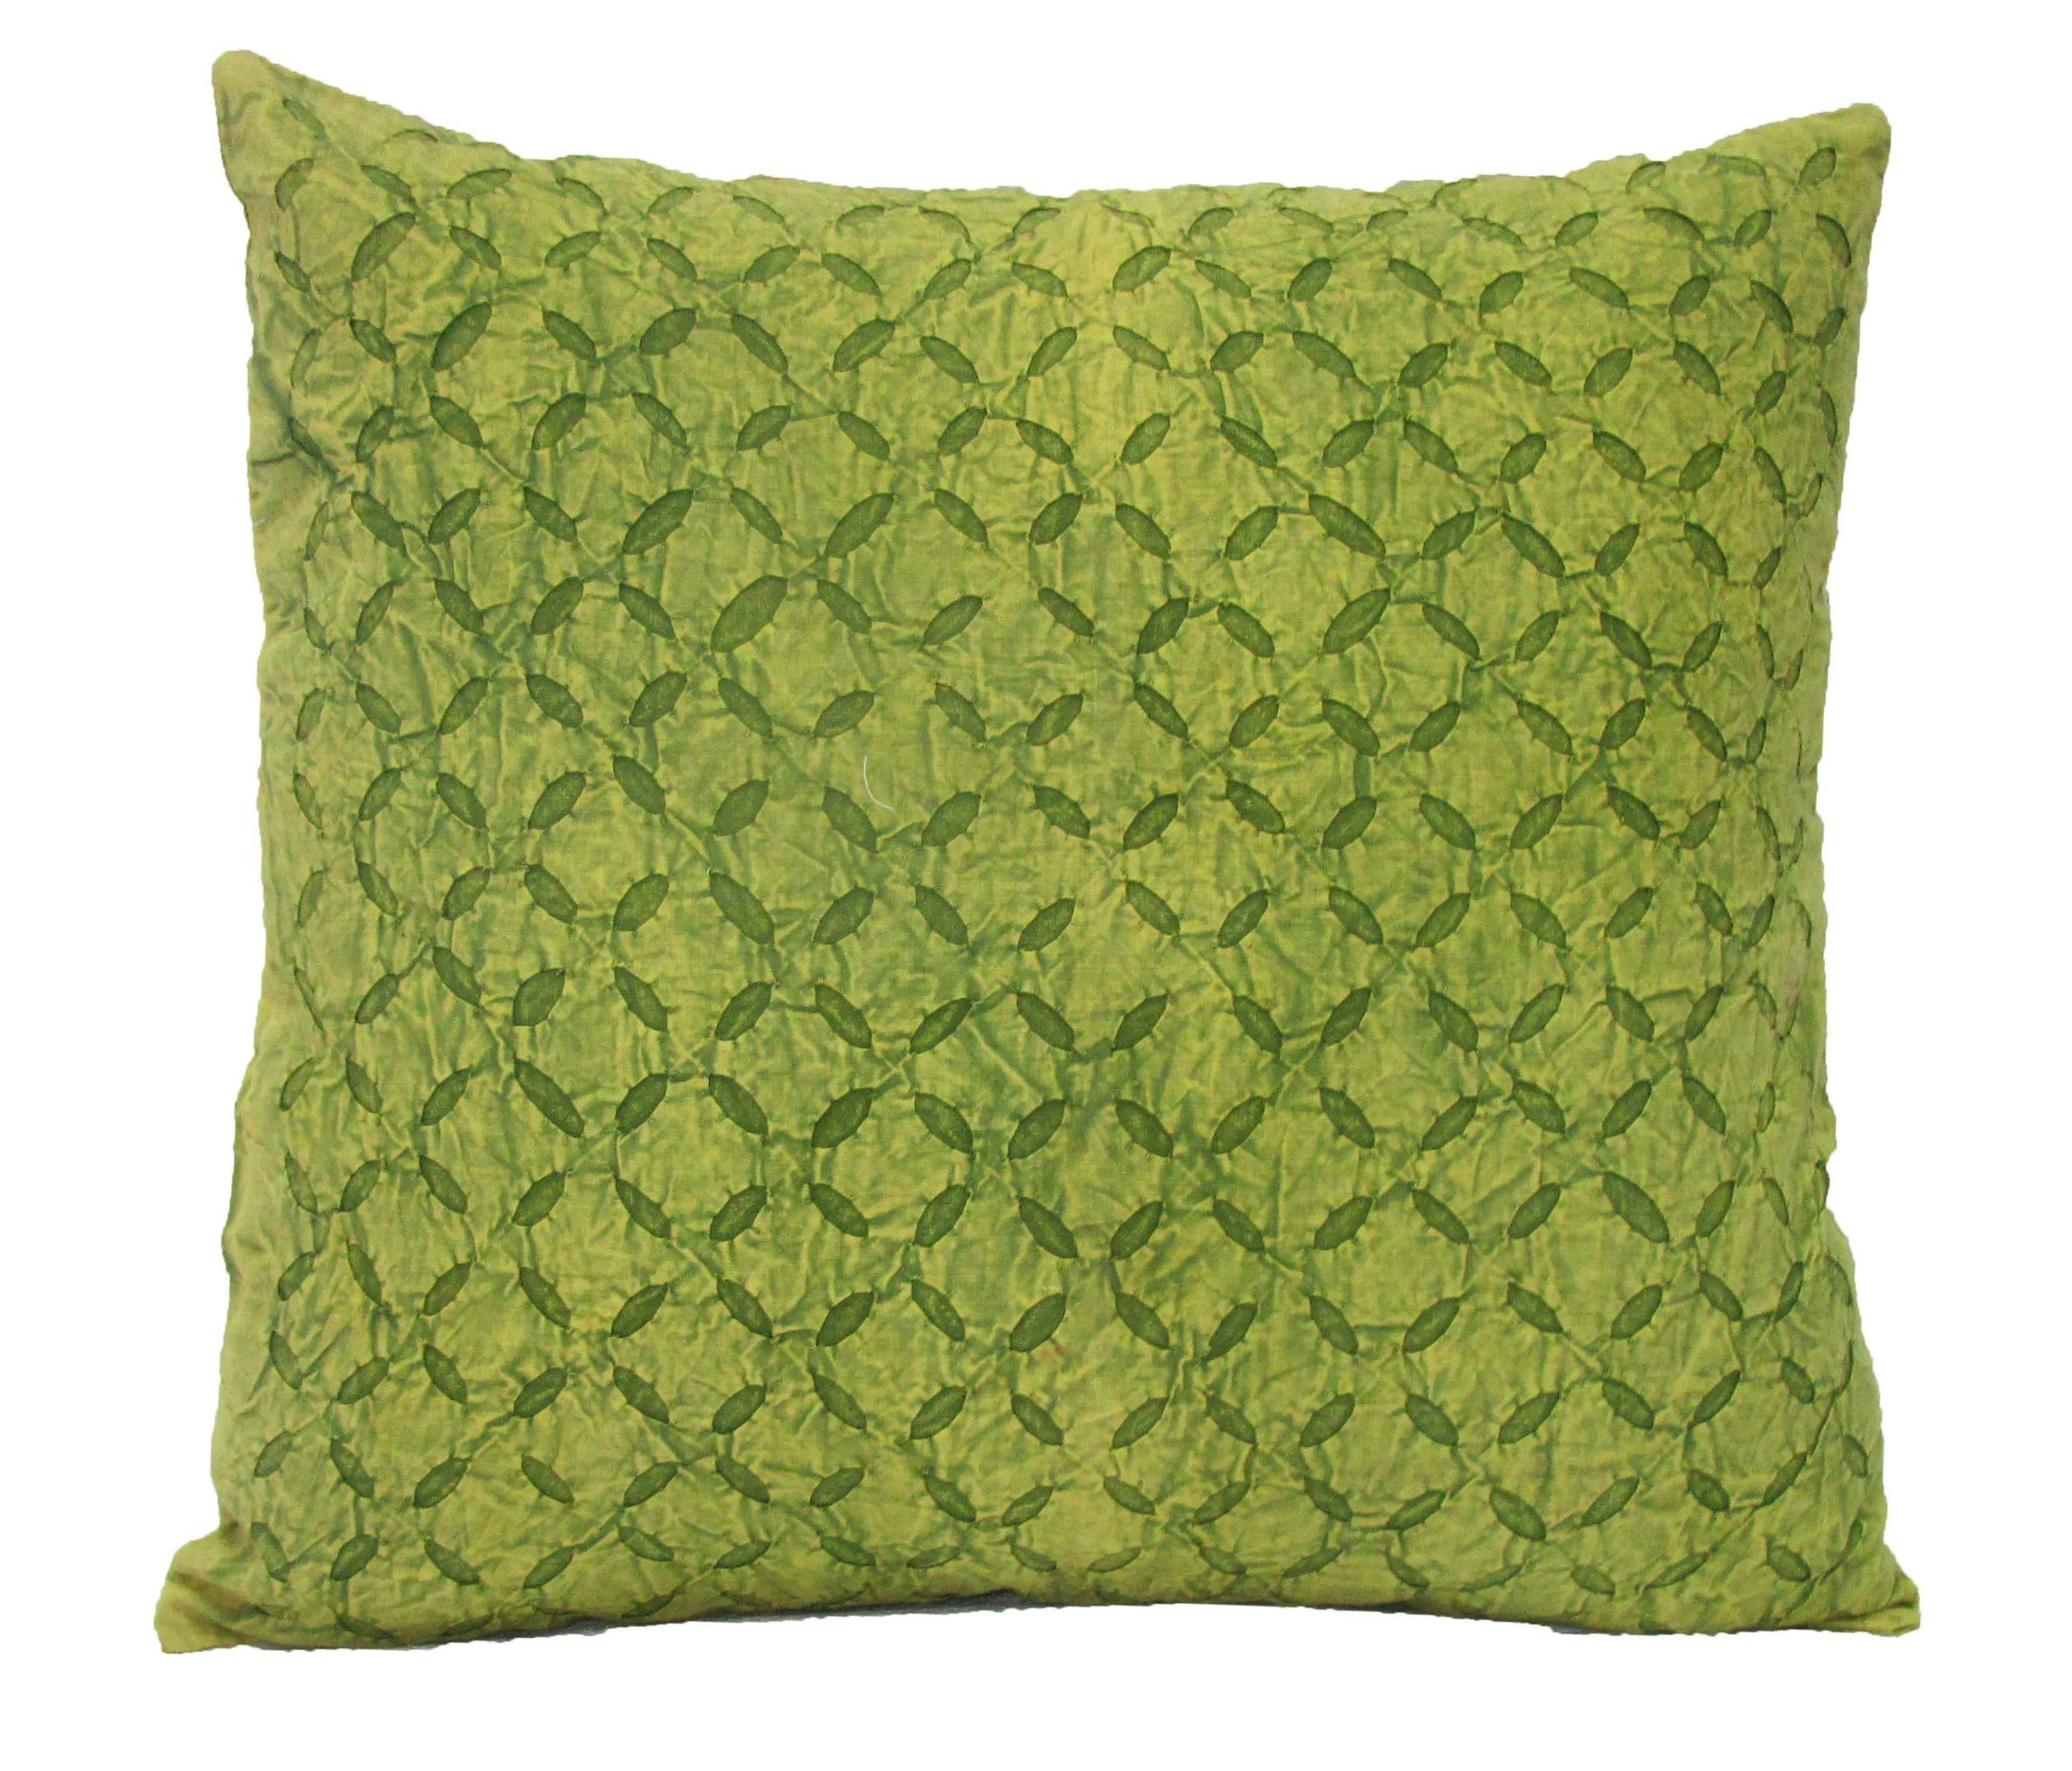 Cushion Covers Suppliers Cushion Cover Exporters Cushion Covers